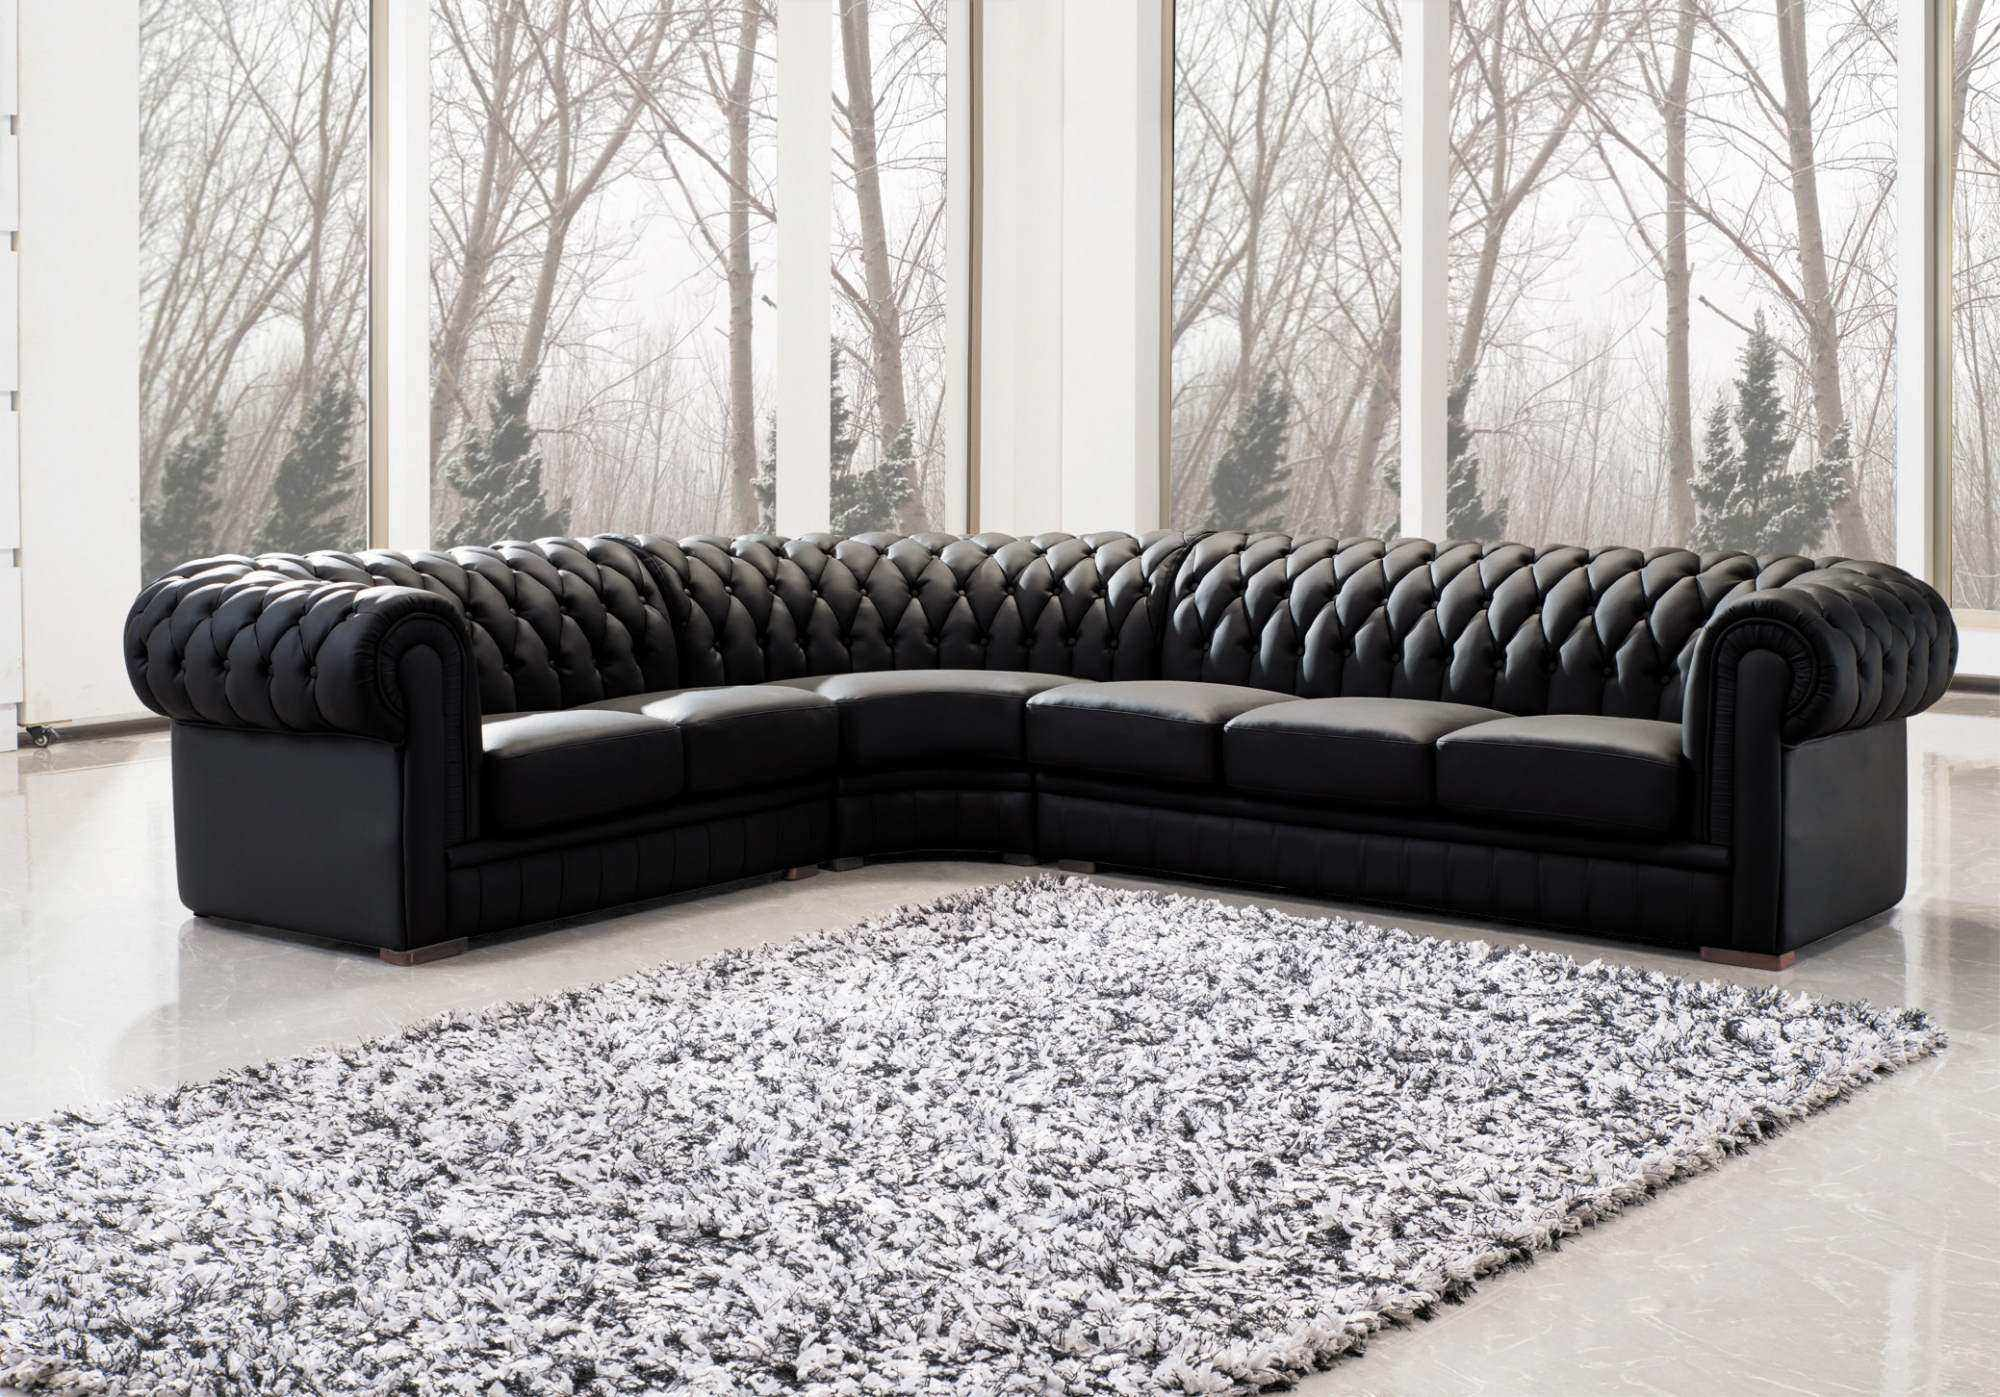 deco in paris grand canape d angle capitonne noir chesterfield gauche can angle chester noir 2a3. Black Bedroom Furniture Sets. Home Design Ideas